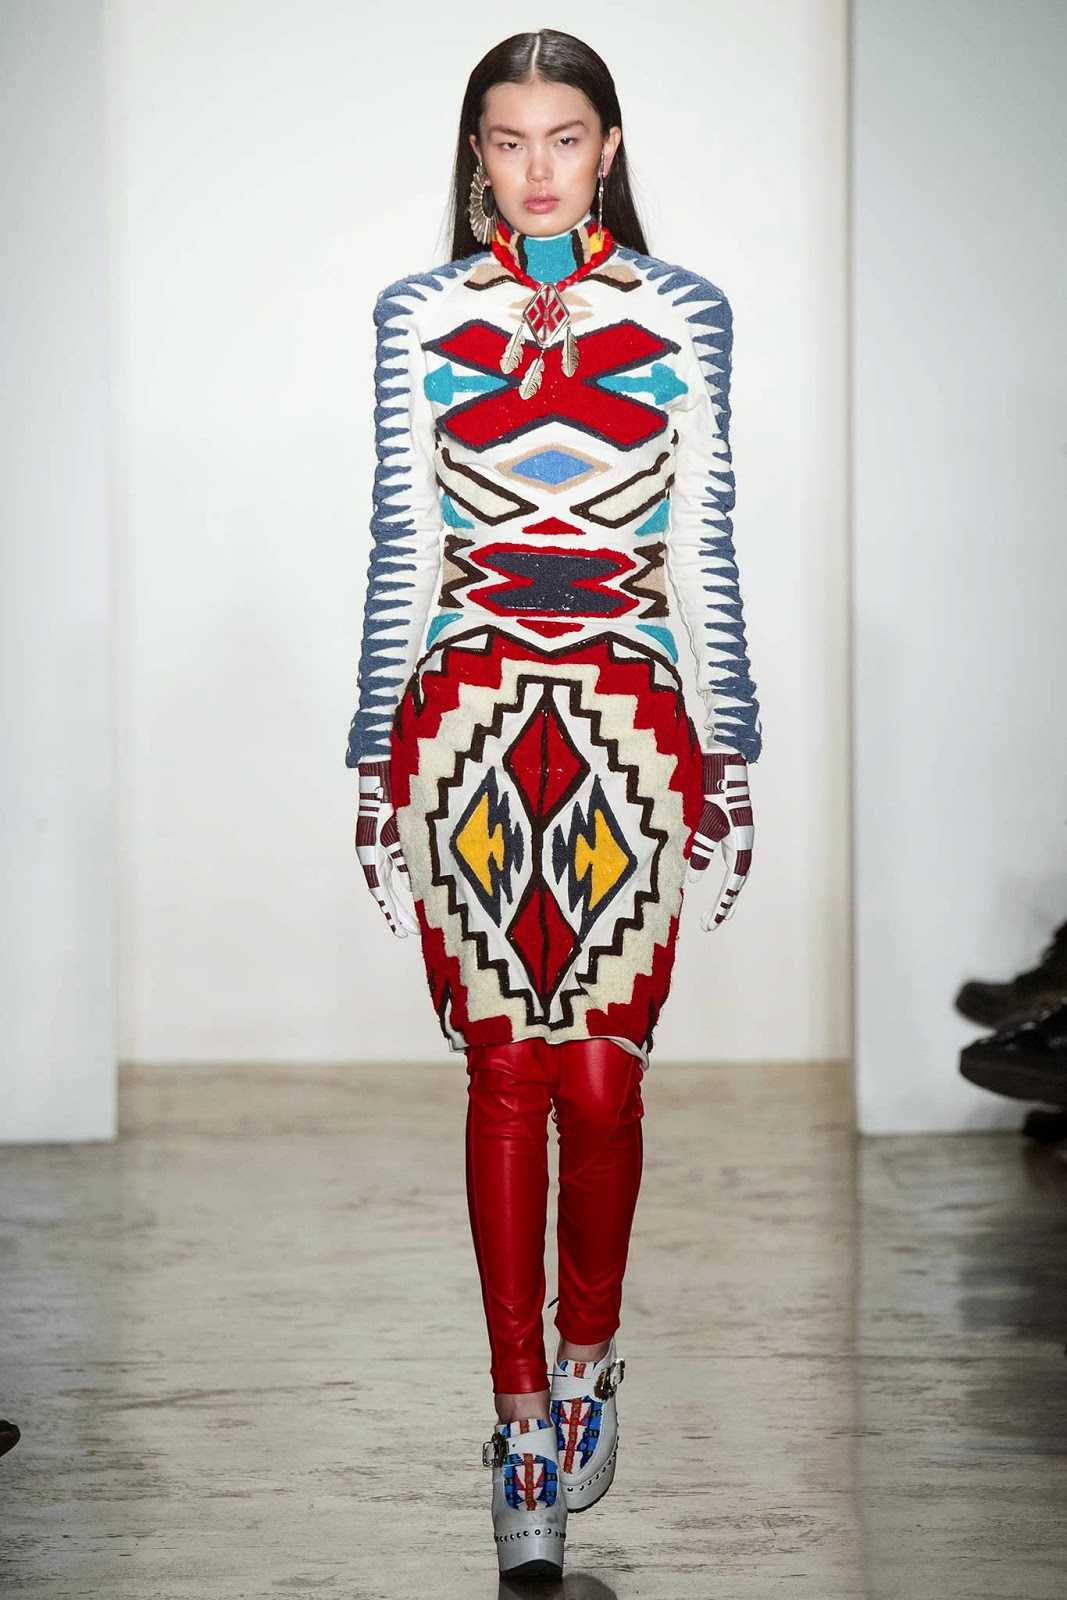 BEYOND BUCKSKIN: KTZ's Latest Collection: A Racist Ripoff